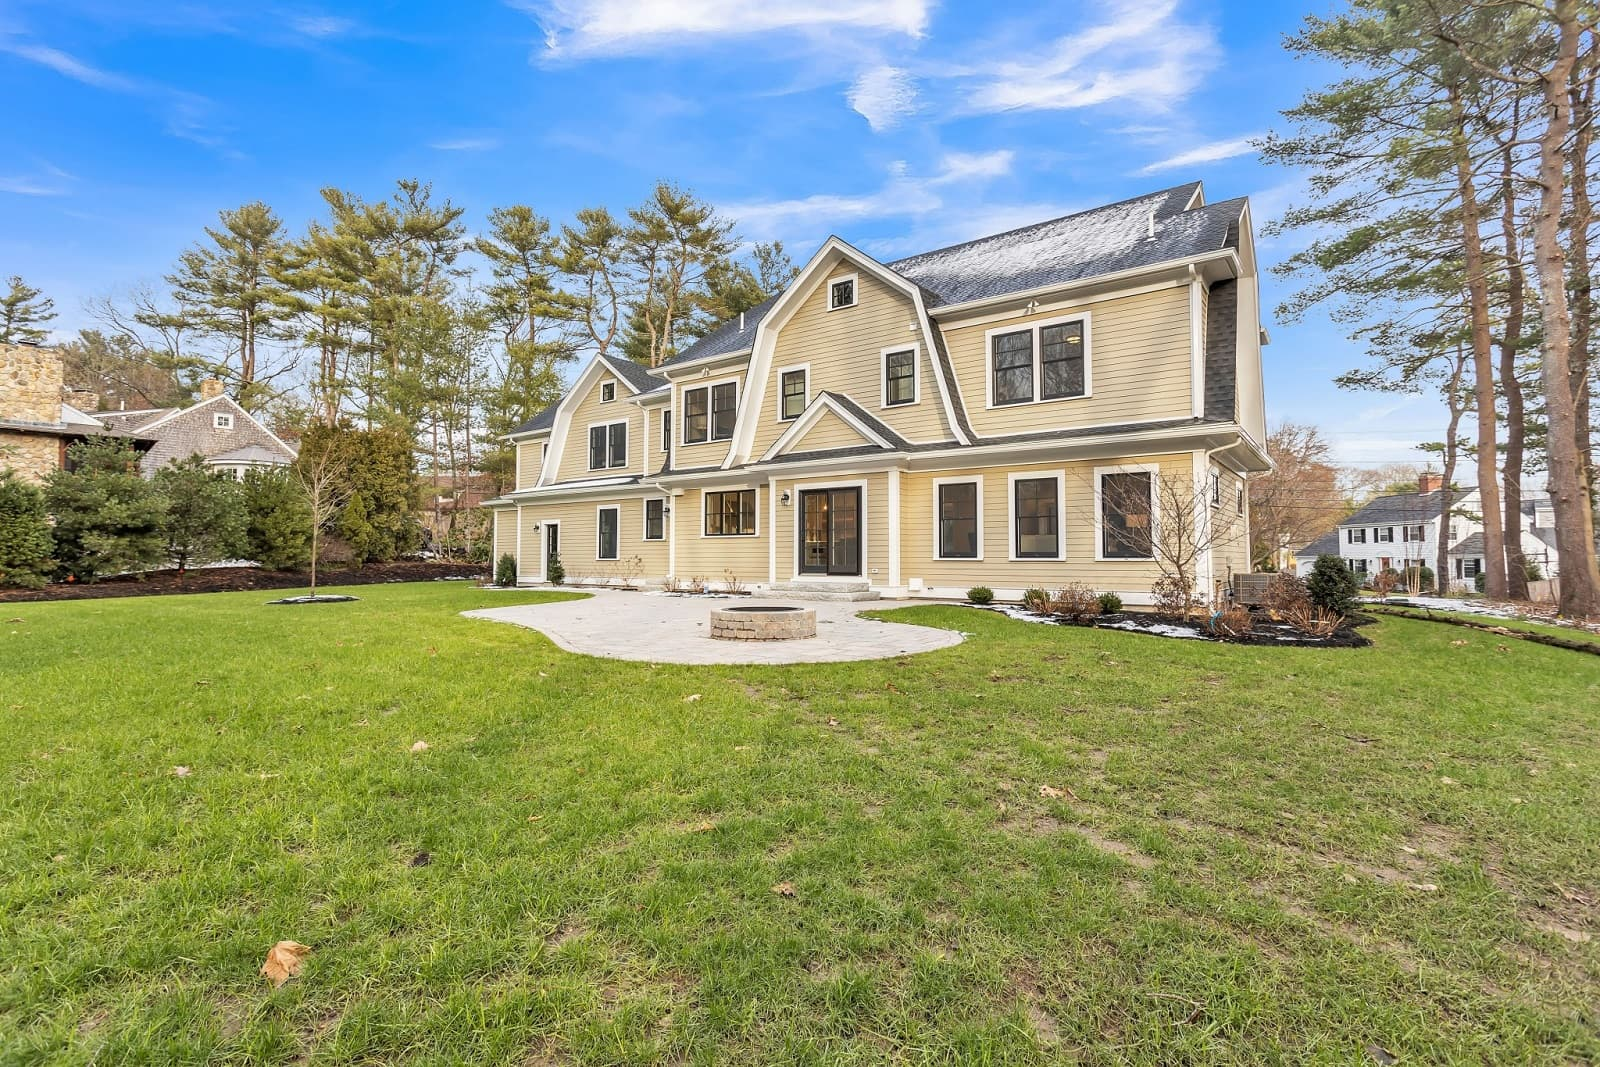 Real Estate Photography i Newton - MA - USA - Front View